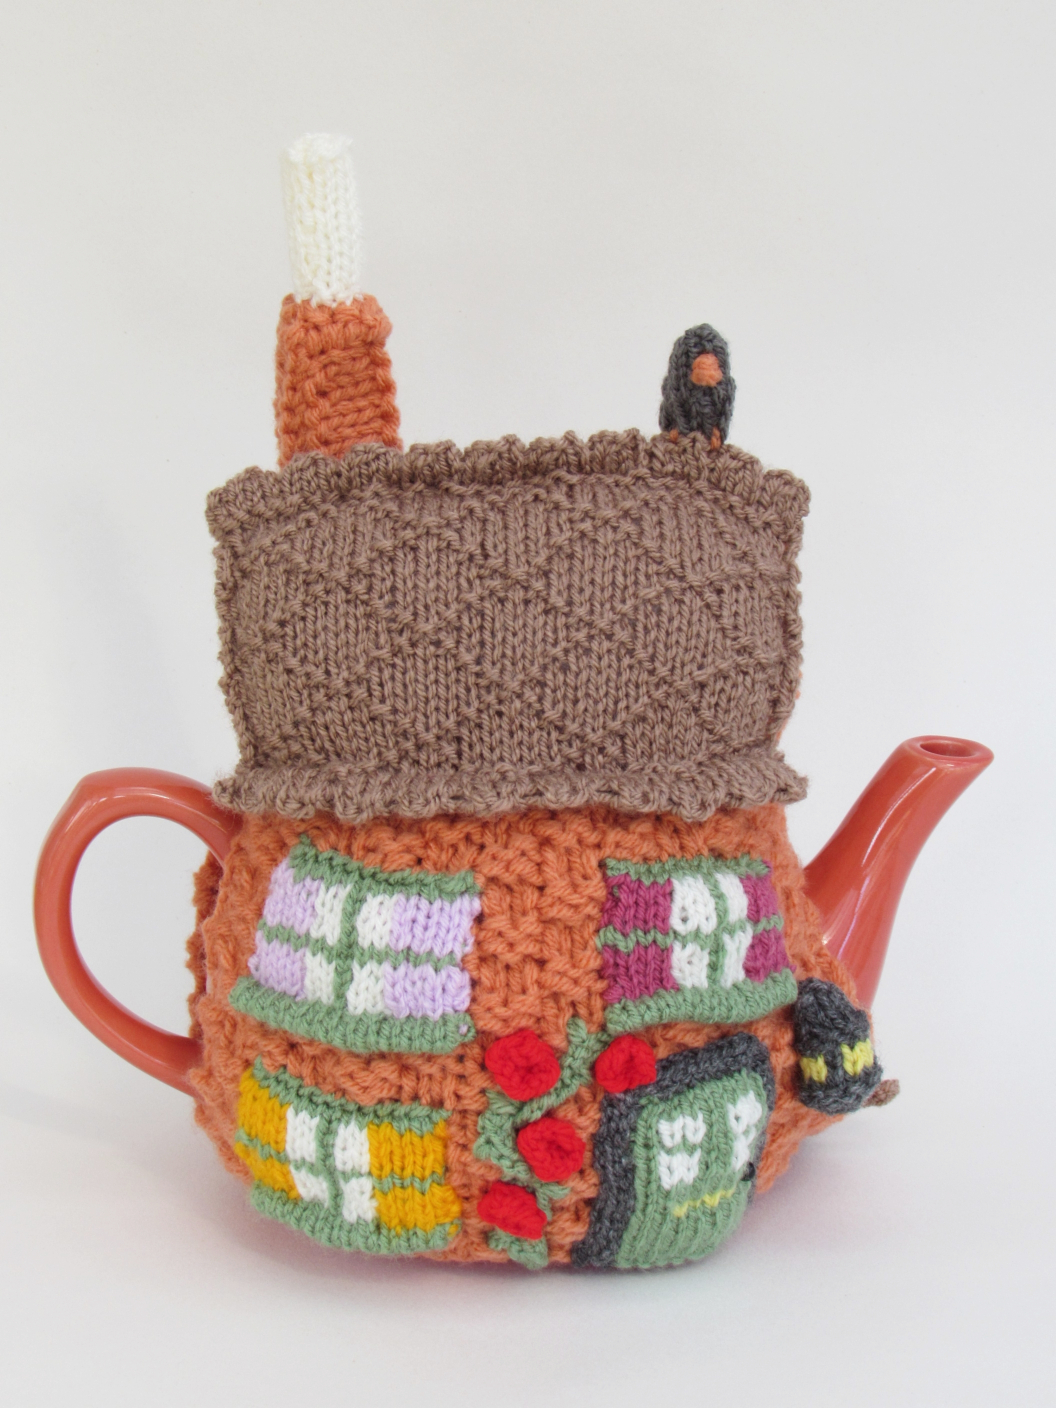 Home Sweet Home tea cosy